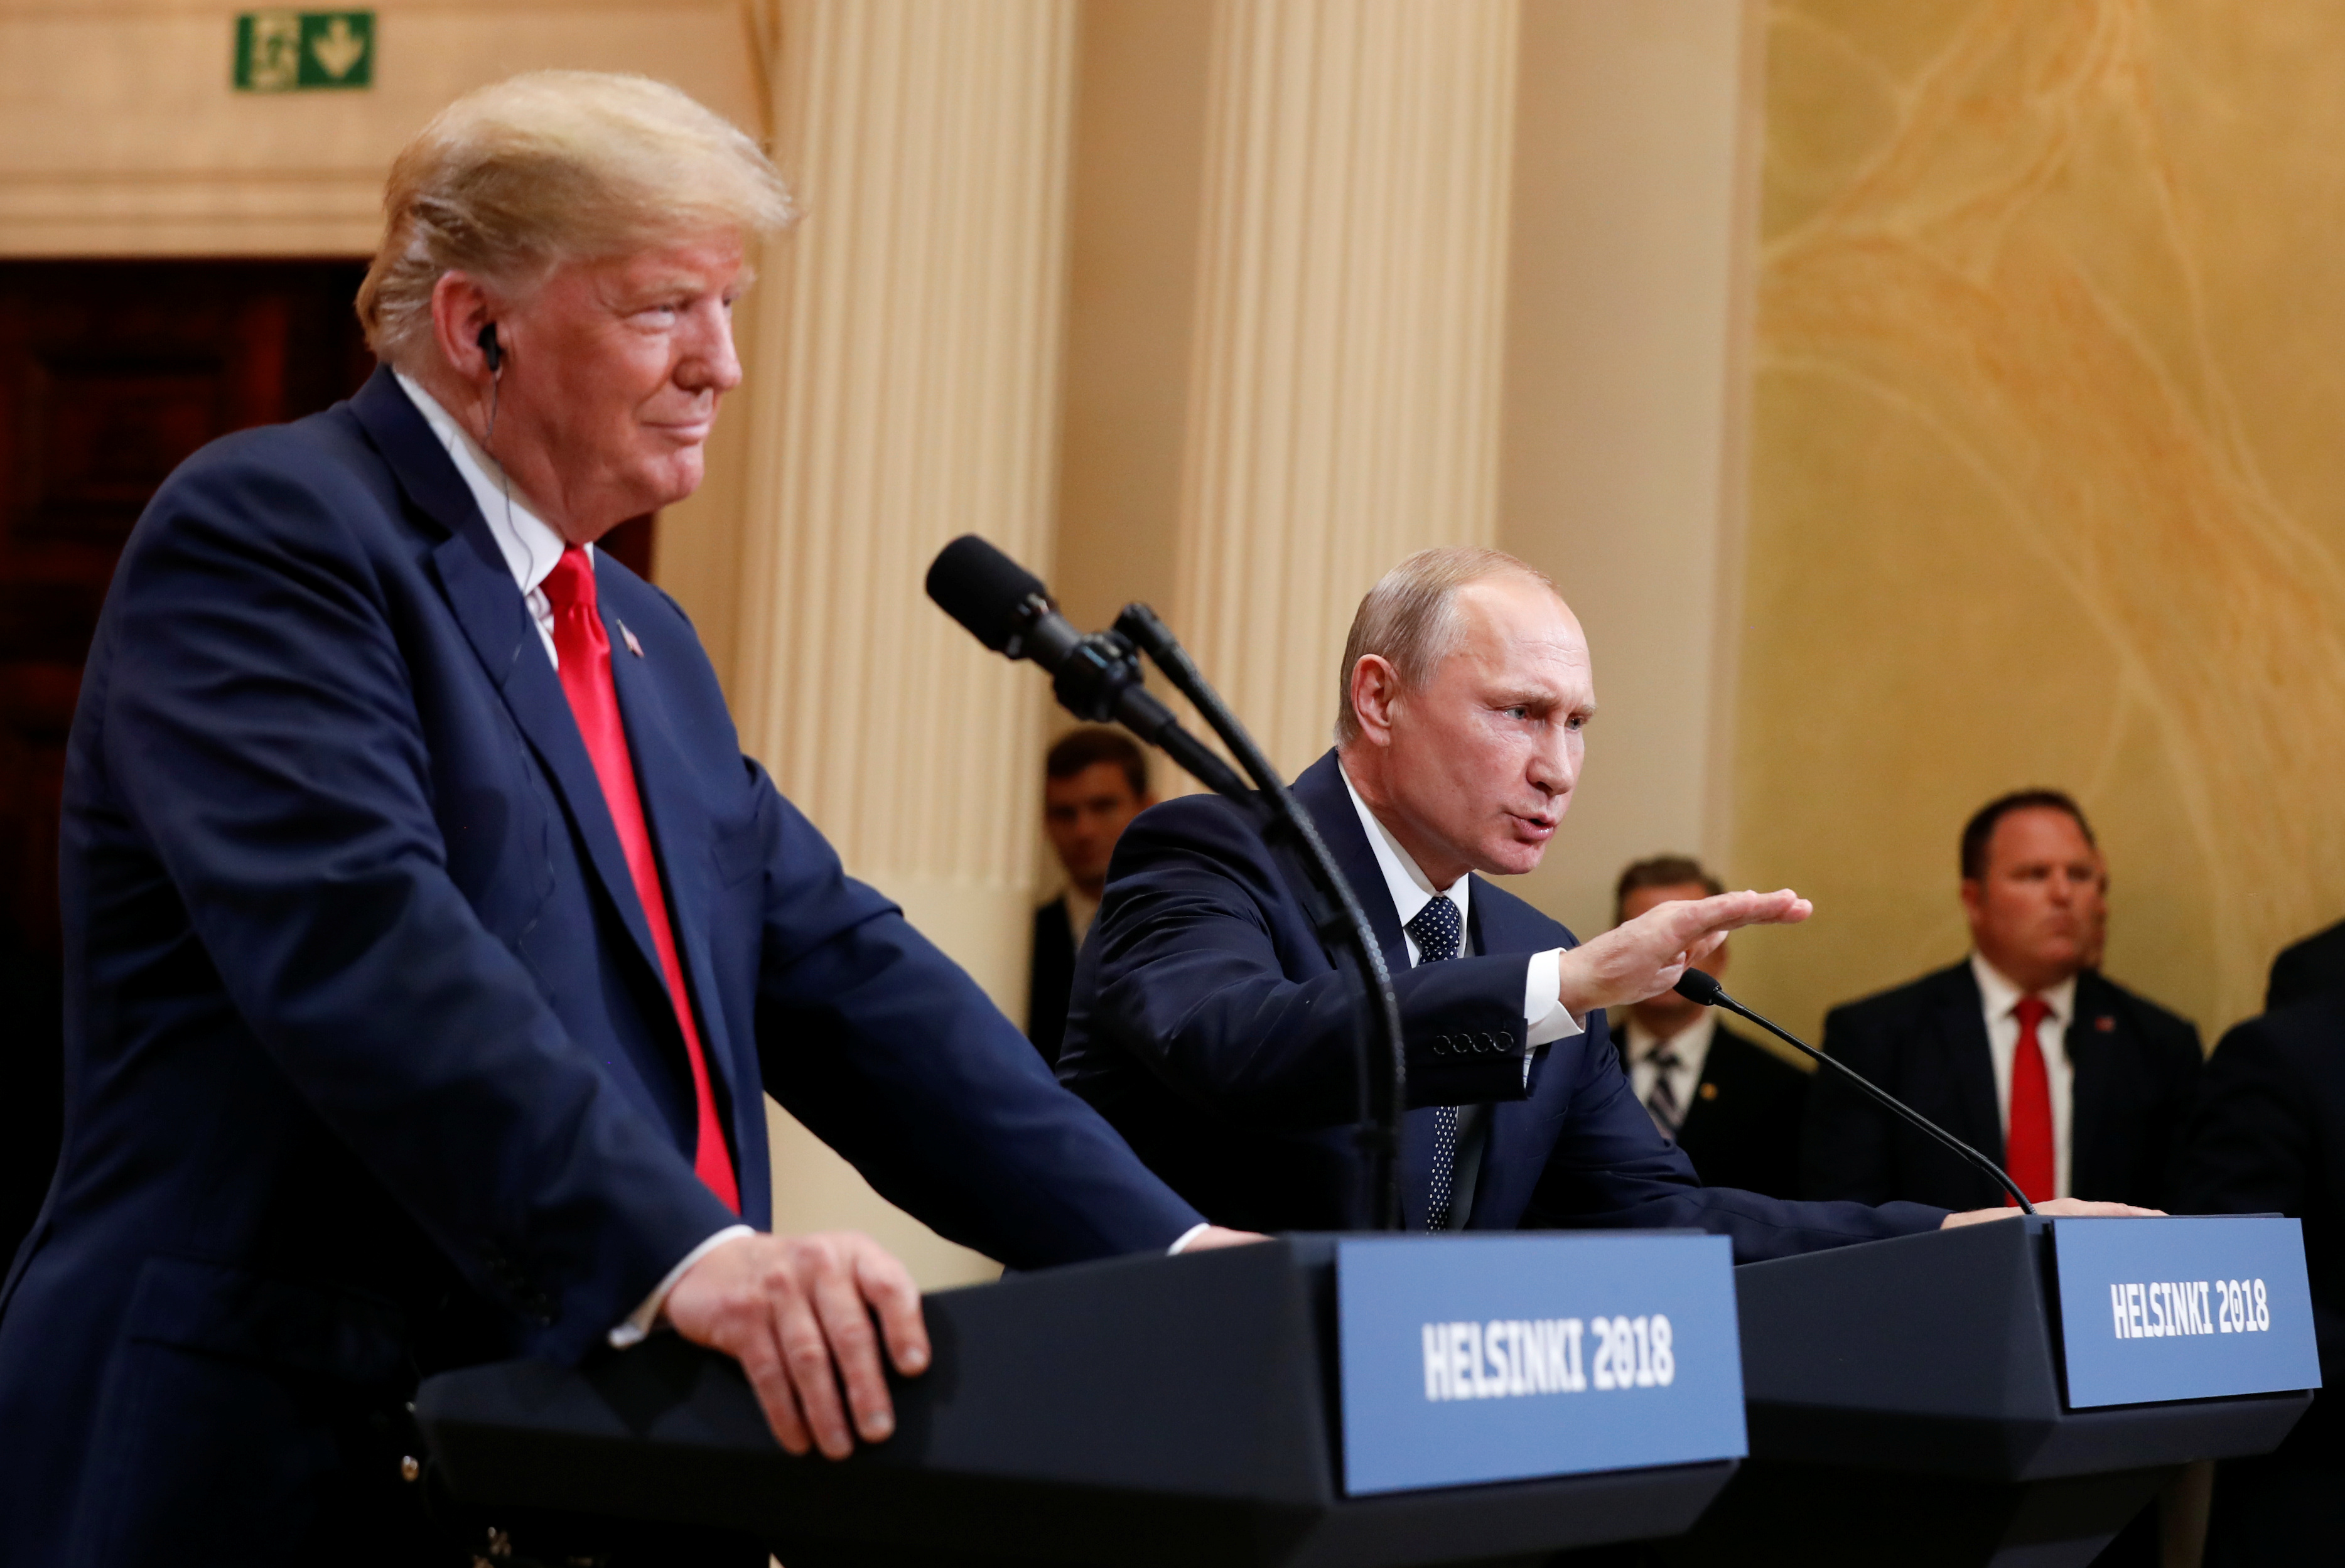 Russia's President Vladimir Putin gestures during a joint news conference with U.S. President Donald Trump after their meeting in Helsinki, Finland, July 16, 2018. REUTERS/Kevin Lamarque - RC1308EDF9C0